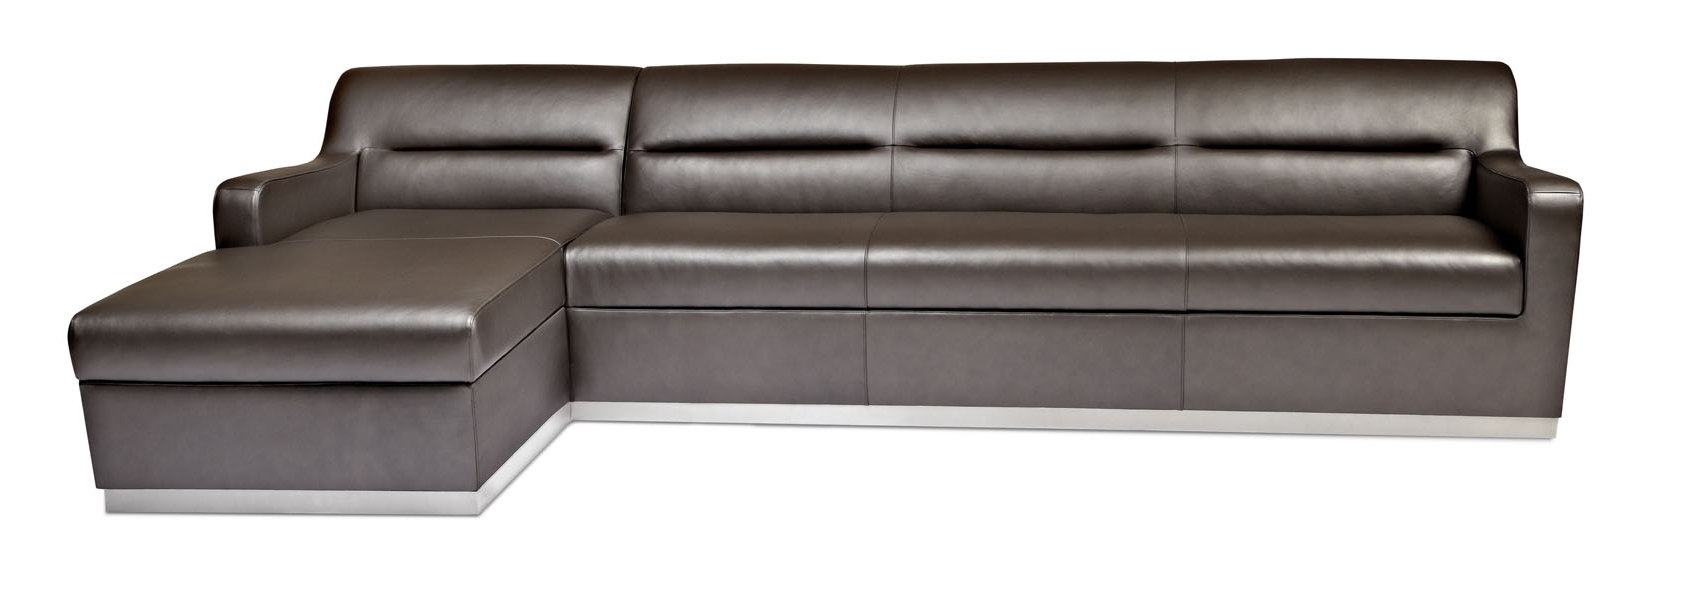 Recent Niagara Sectional Sofas For American Leather Niagara Sectional Sofa (View 12 of 15)